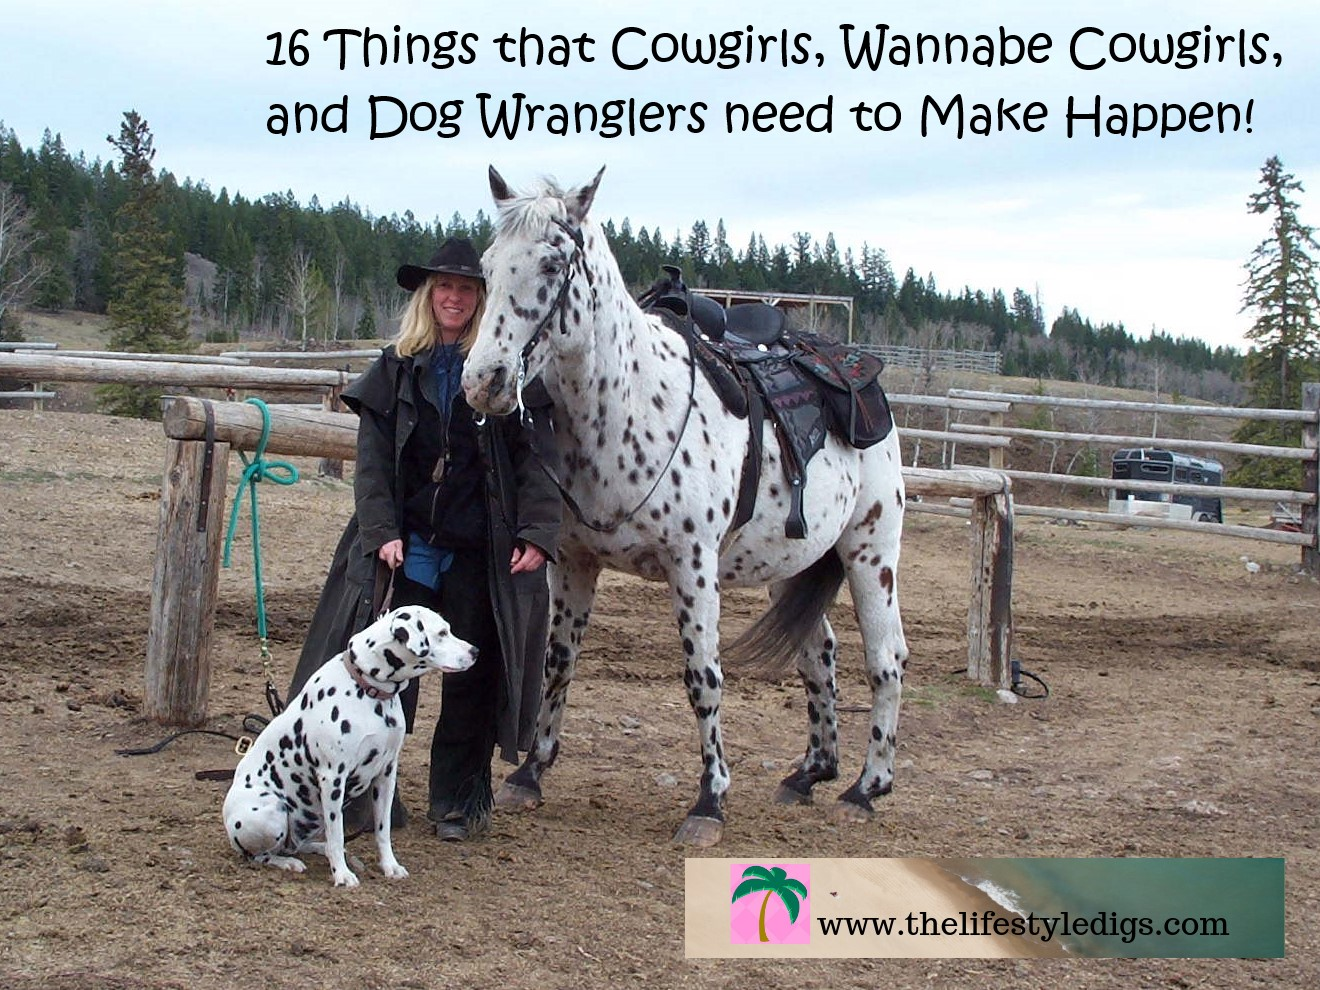 16 Things that Cowgirls, Wannabe Cowgirls, and Dog Wranglers need to Make Happen!